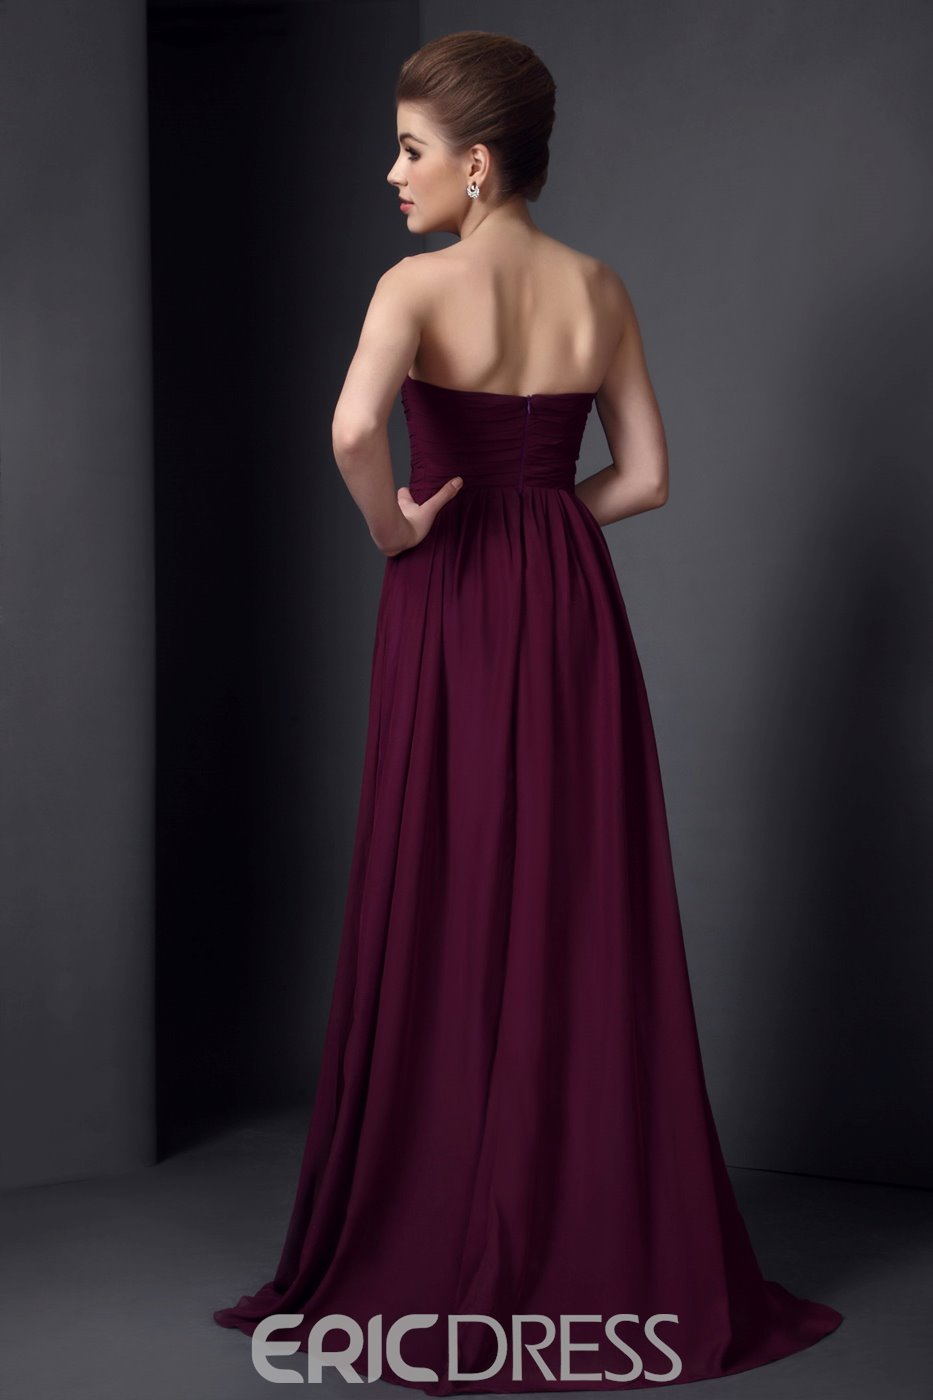 Marvelous Pleats A-Line Empire Waist Floor-Length Bridesmaid Dress